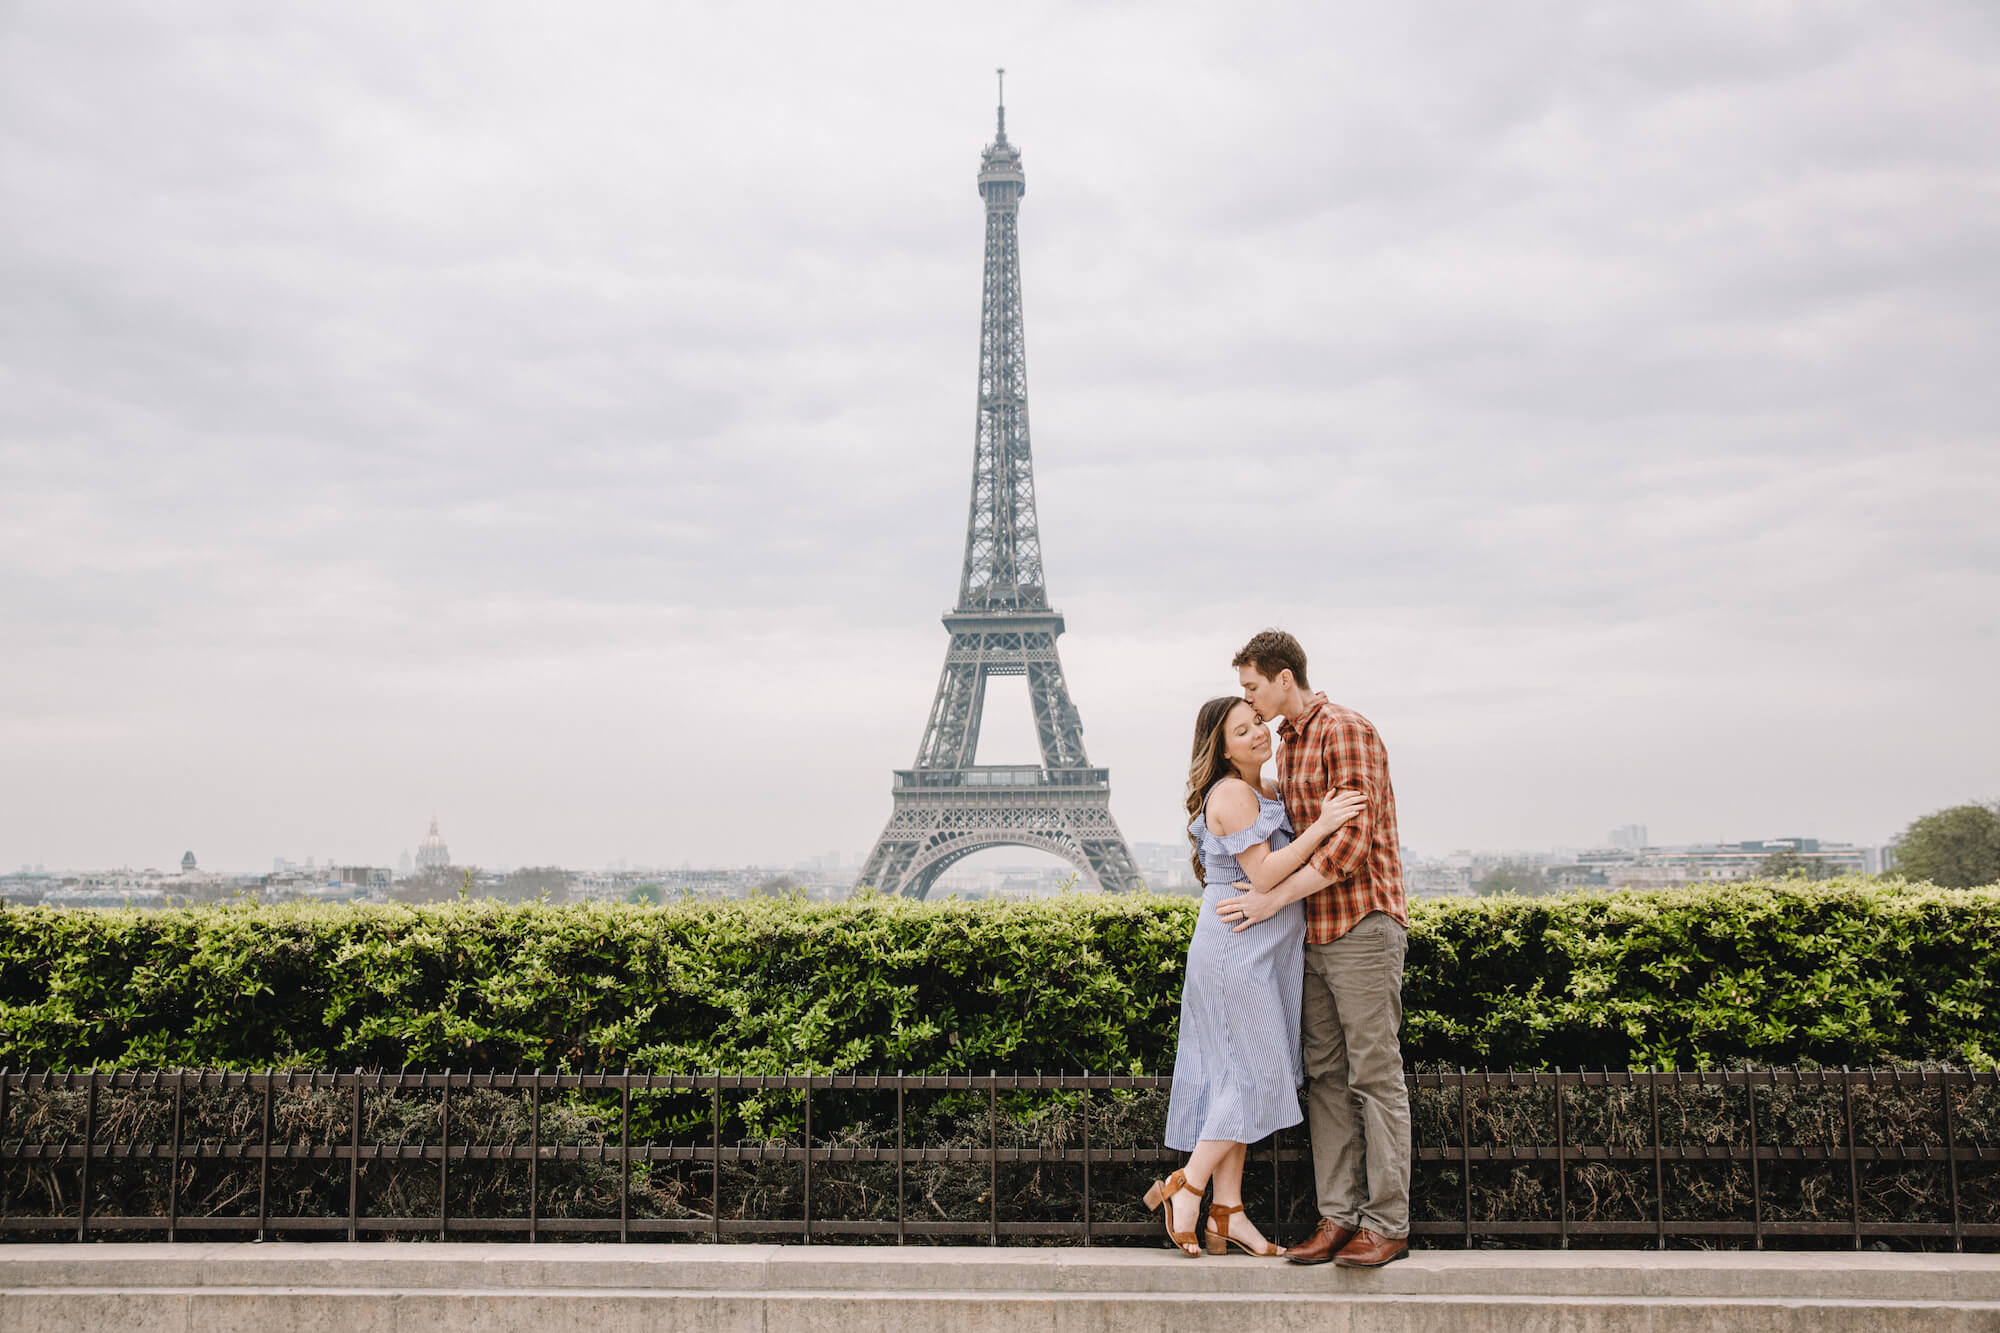 Couple holding one another while the male partner kisses his wife's head with the Eiffel Tower in the background